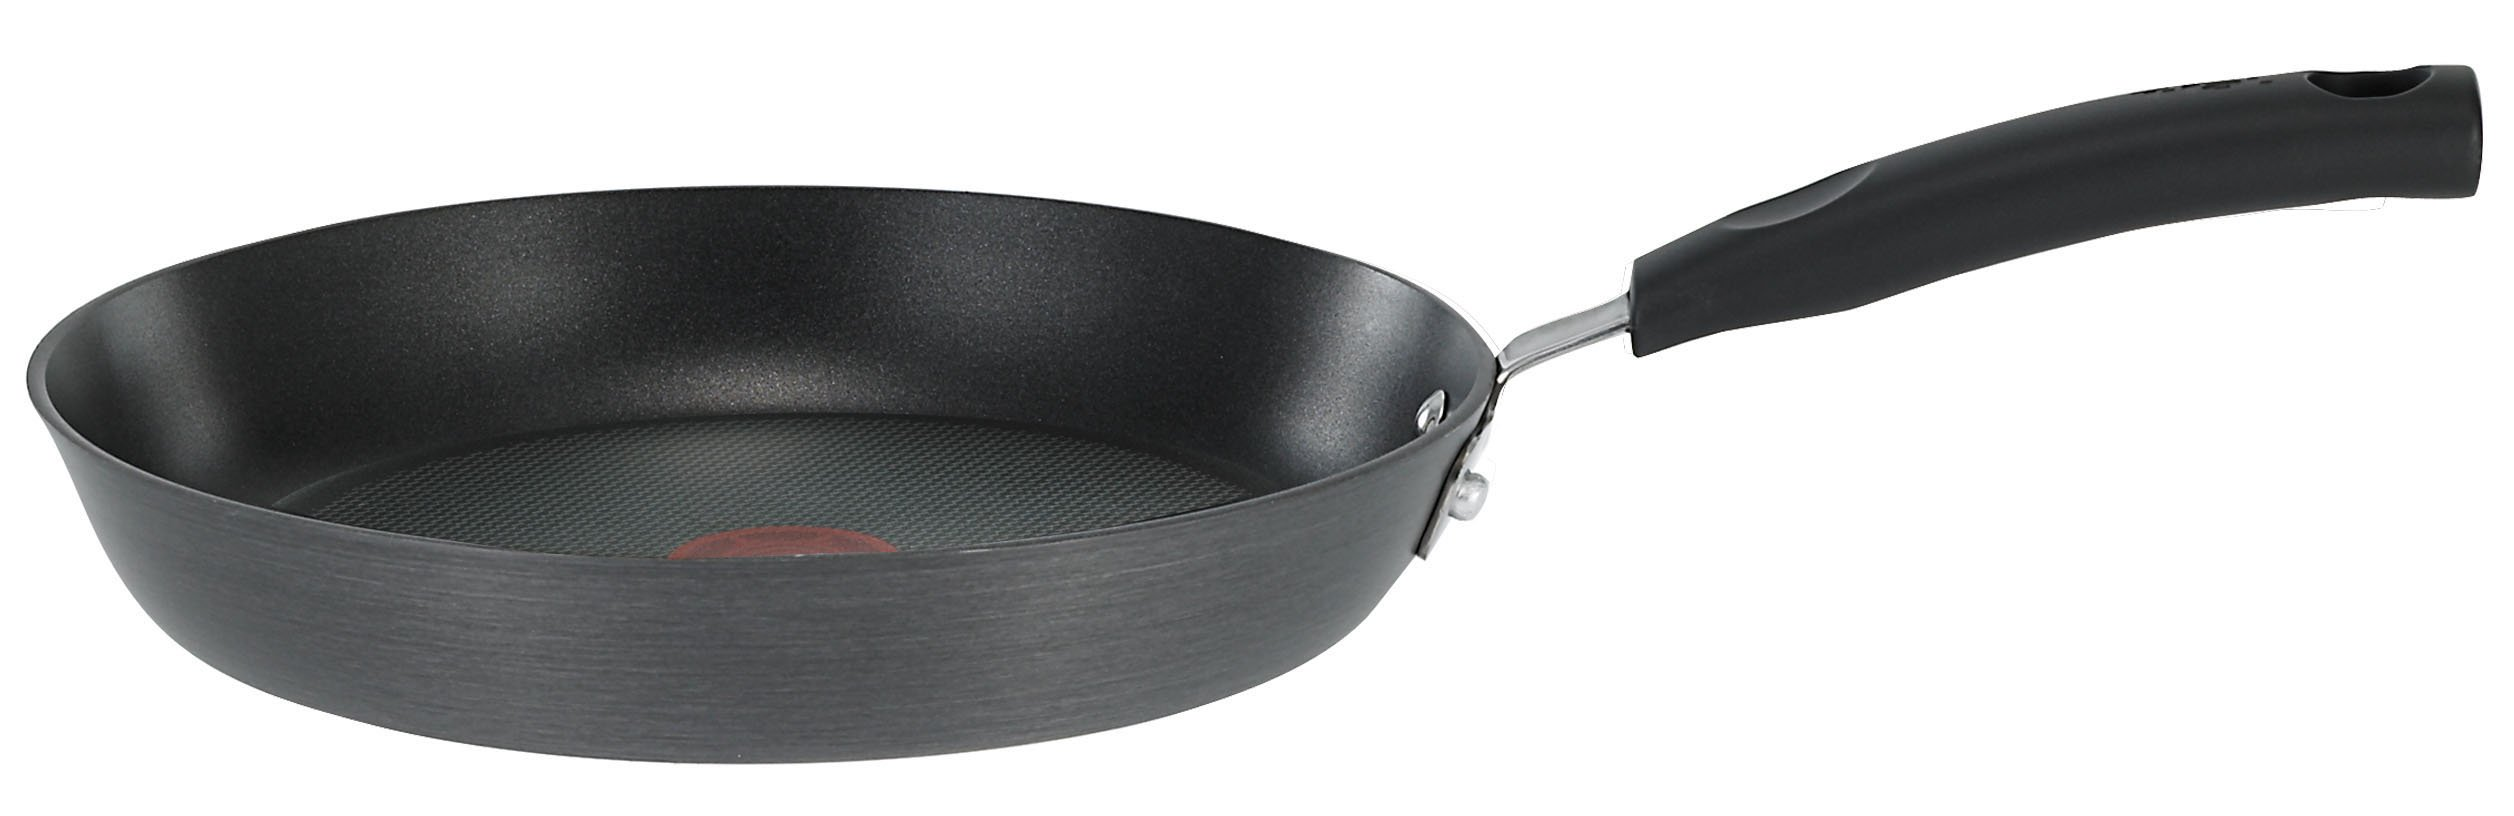 T-fal D91302 Signature Hard Anodized Scratch Resistant PFOA Free Nonstick Thermo-Spot Heat Indicator Fry Pan Cookware, 7.75-Inch, Black